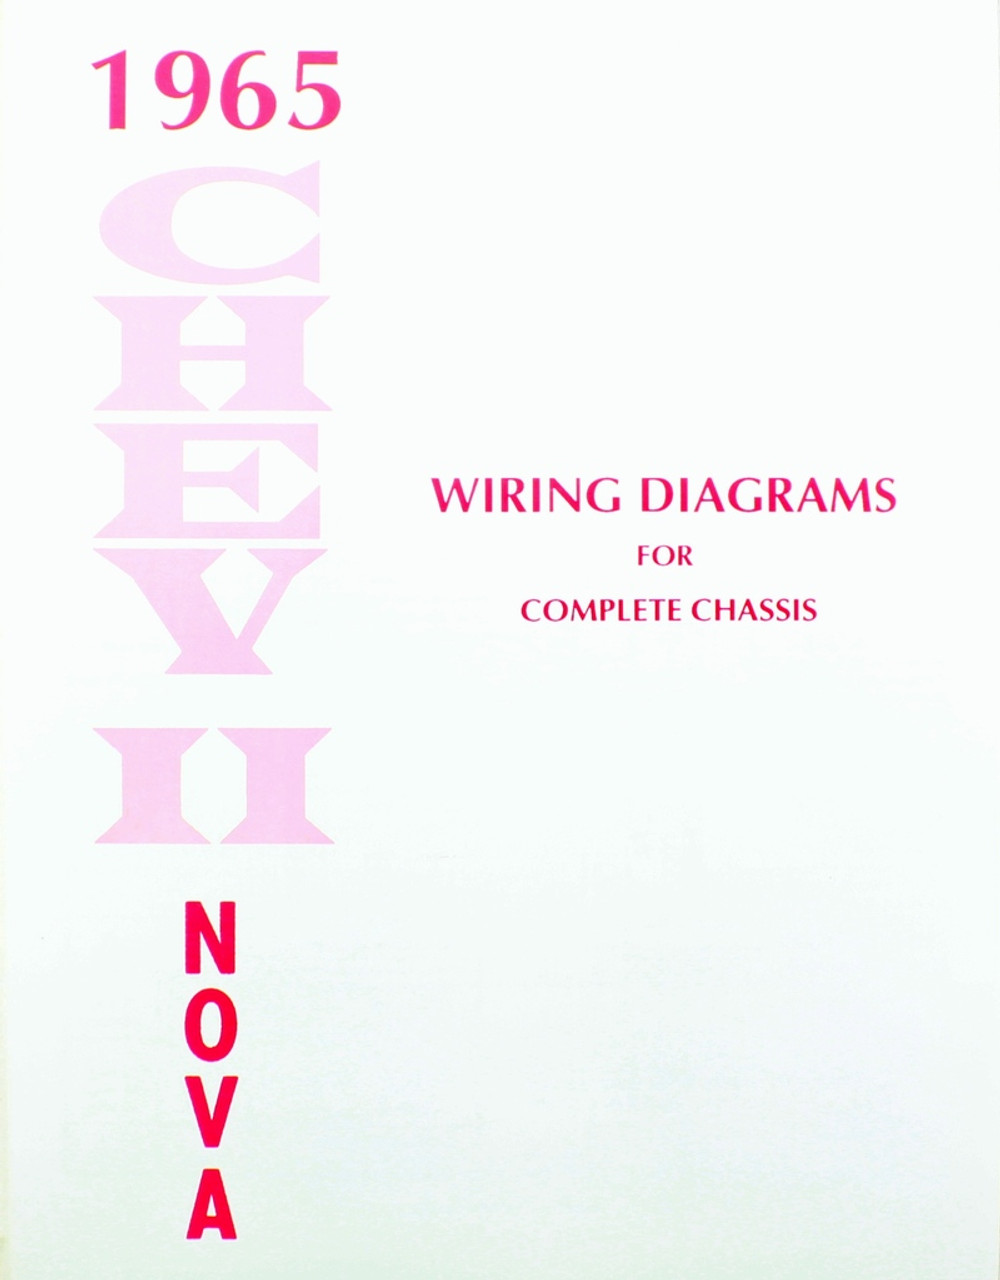 L1906_zpsggjz35xk__04445.1507328875?c=2 65 1965 chevy nova electrical wiring diagram manual i 5 classic 72 nova wiring diagram at crackthecode.co